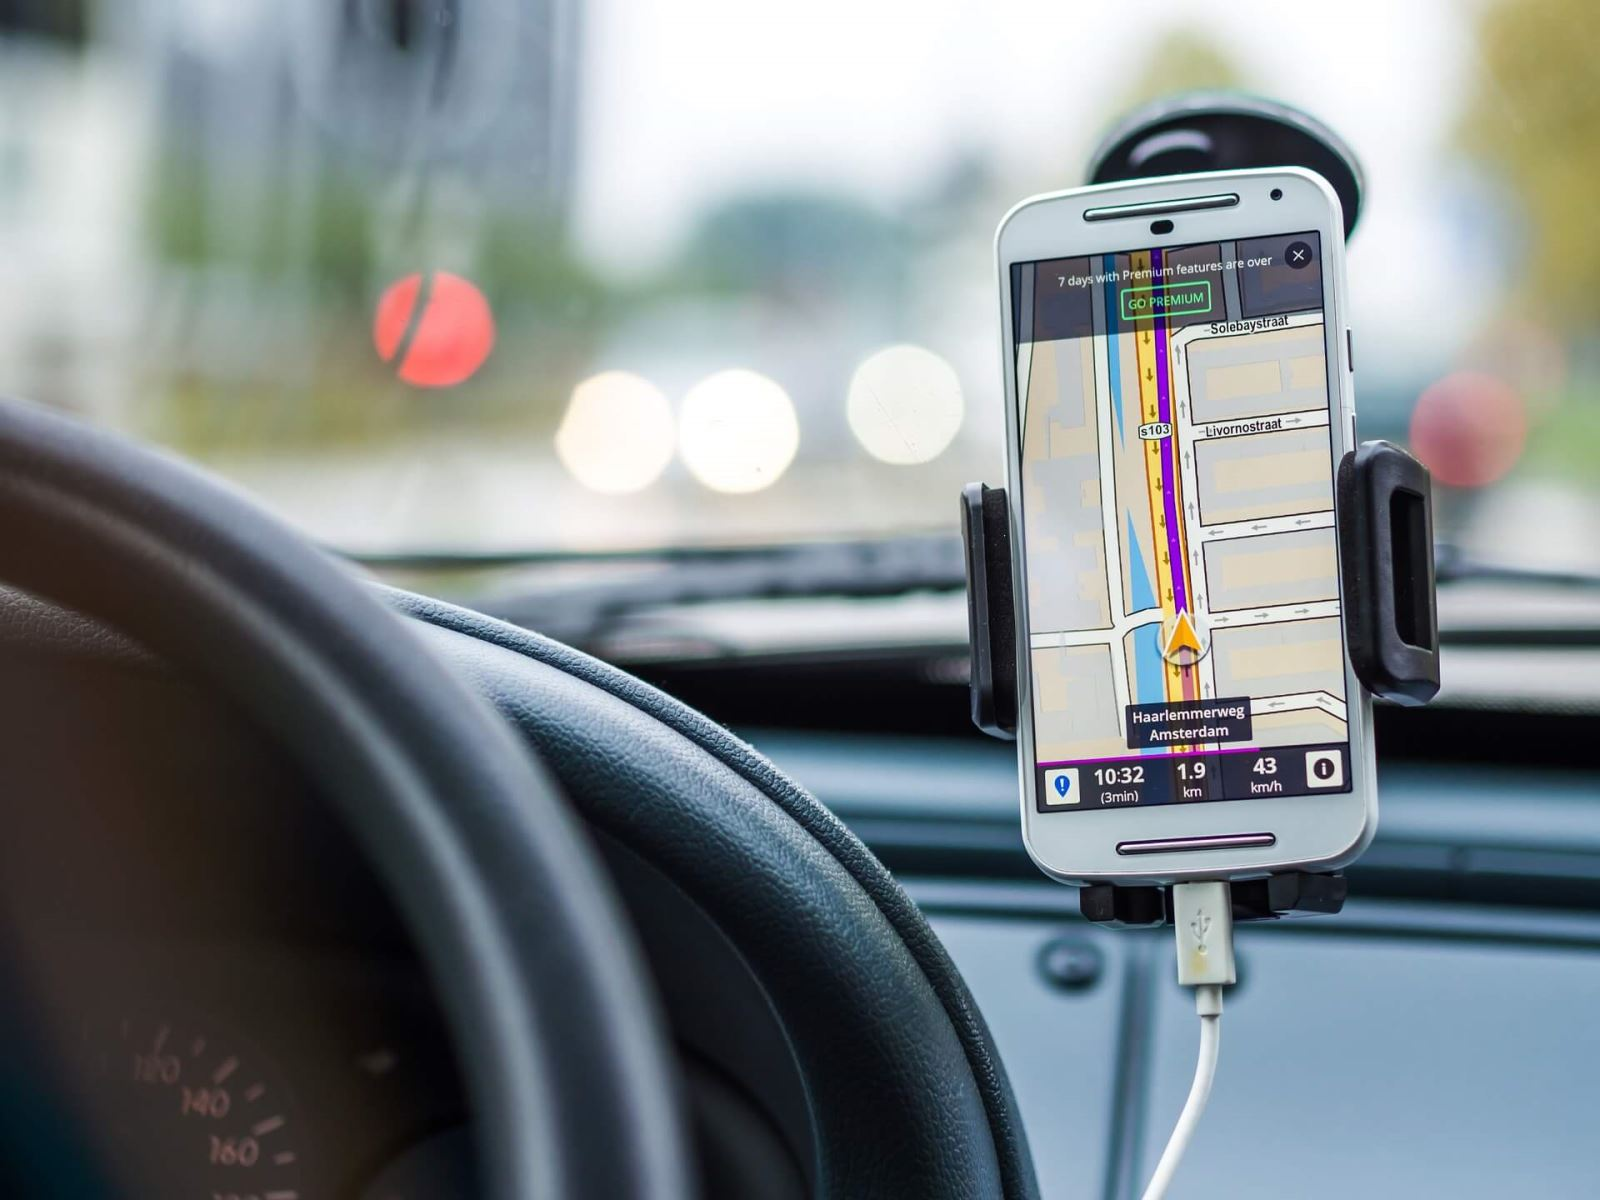 The Most Helpful Phone Apps for Cars